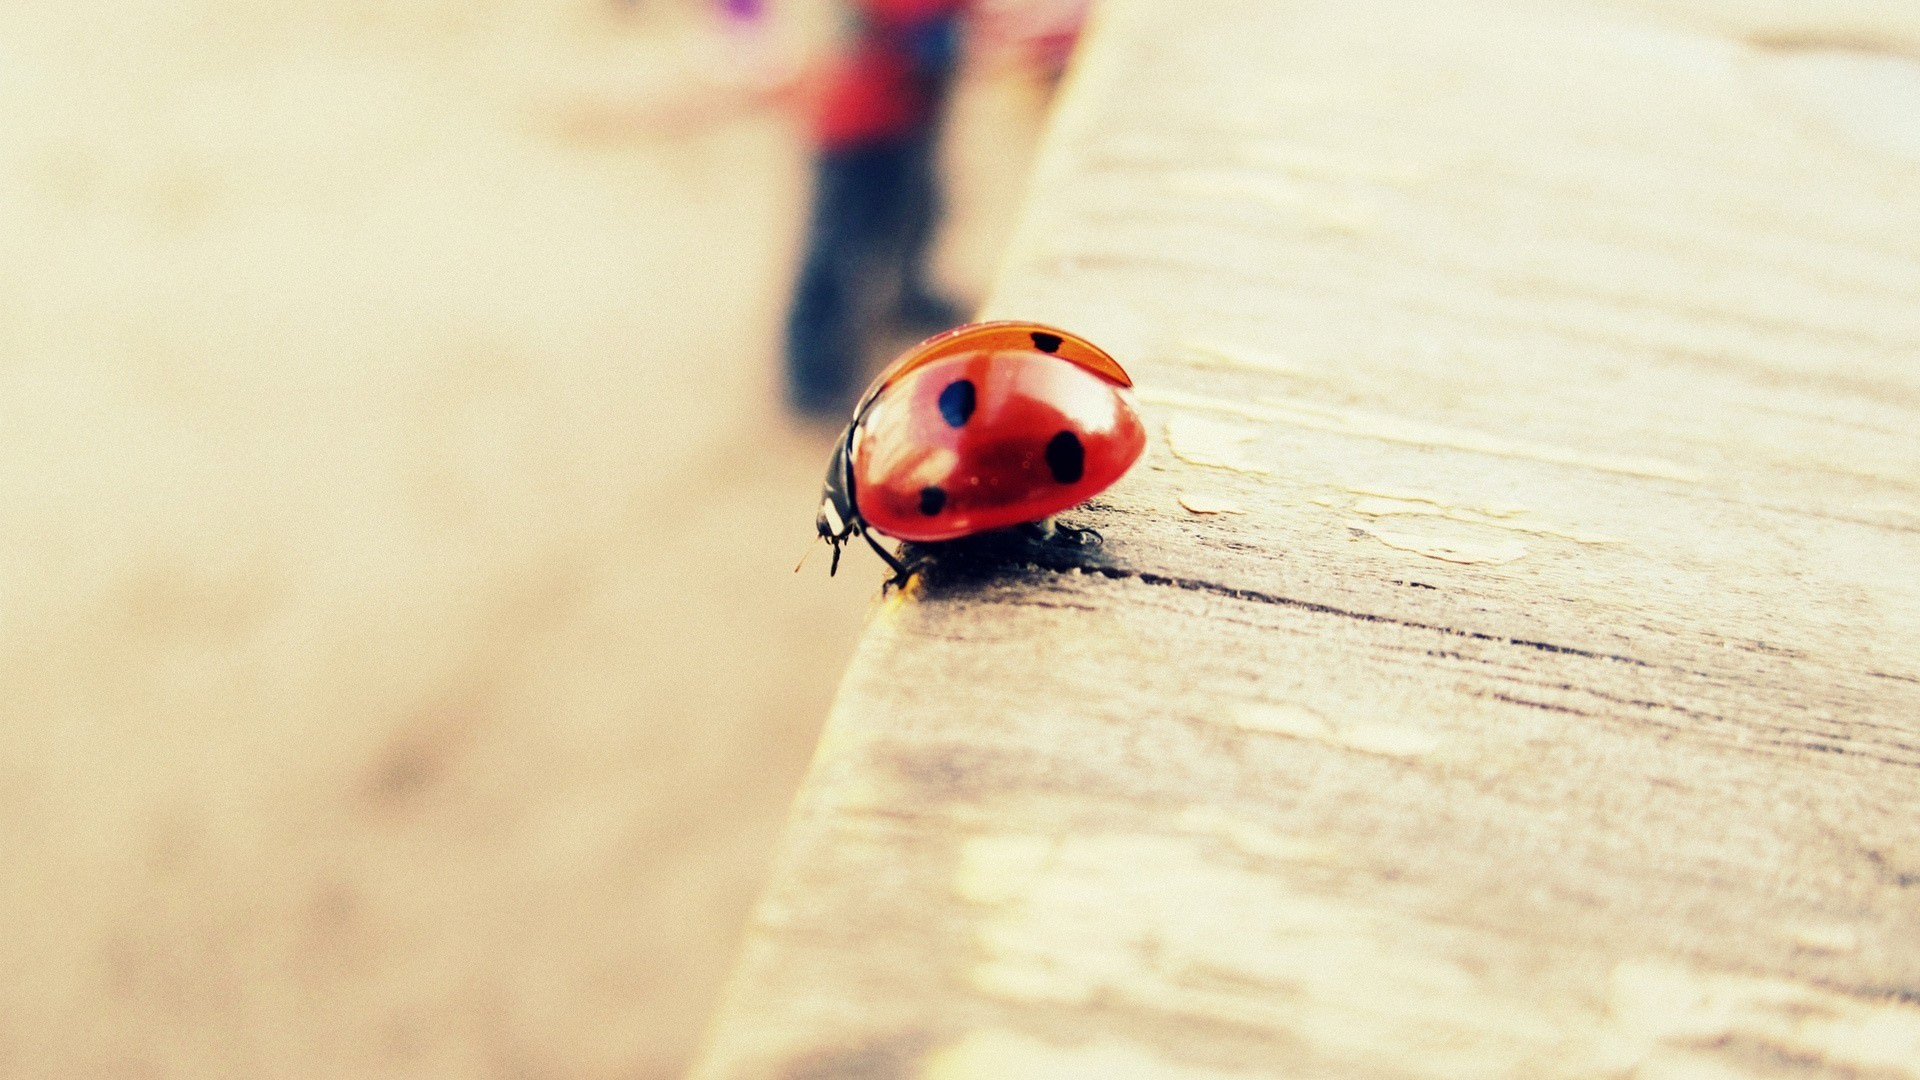 Res: 1920x1080, Ladybug Wallpaper For Free